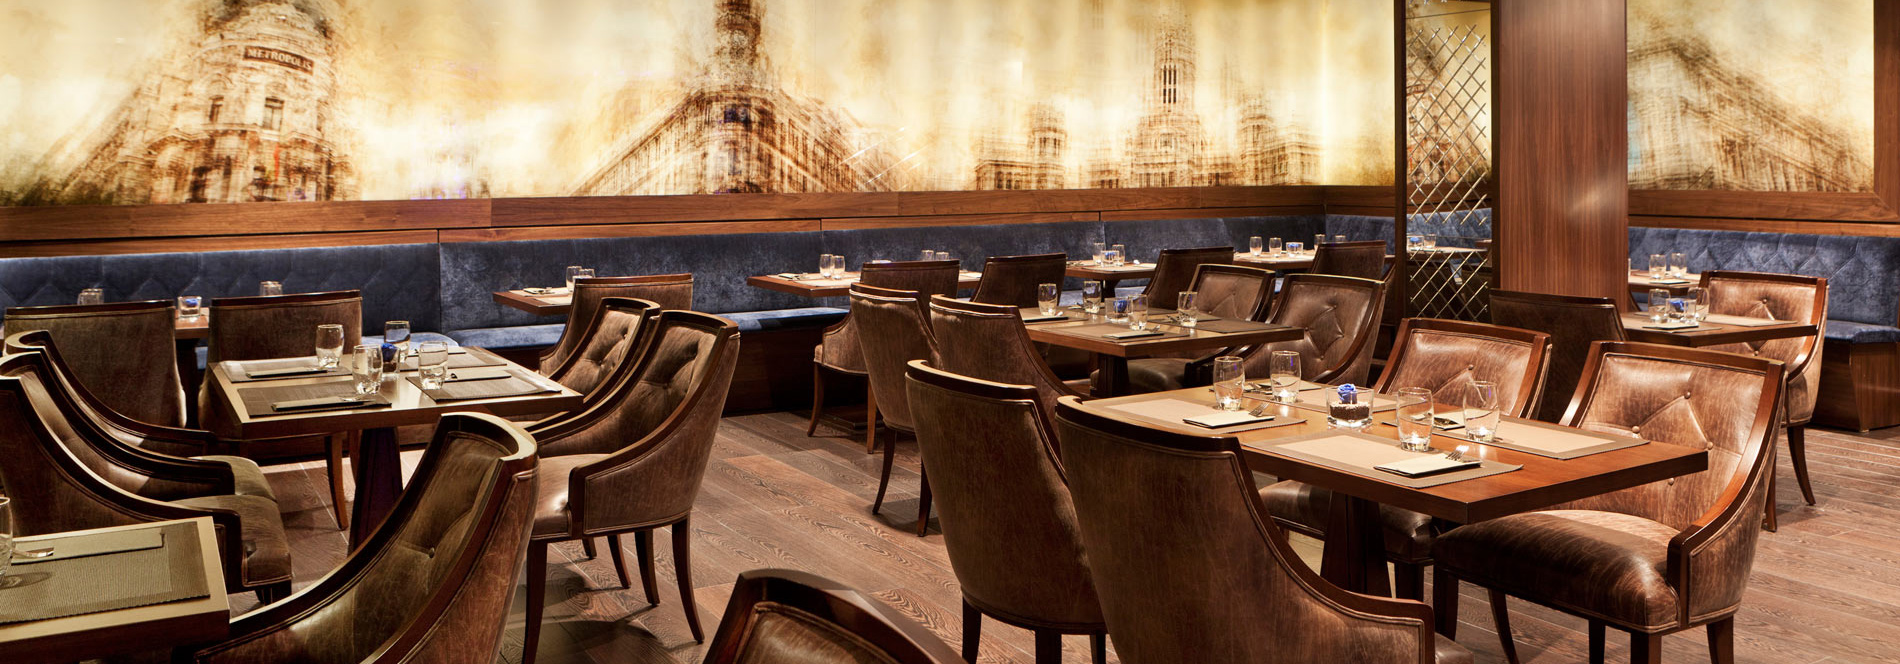 CLARIDGE CAFÉ-RESTAURANT:  tradition and modernity